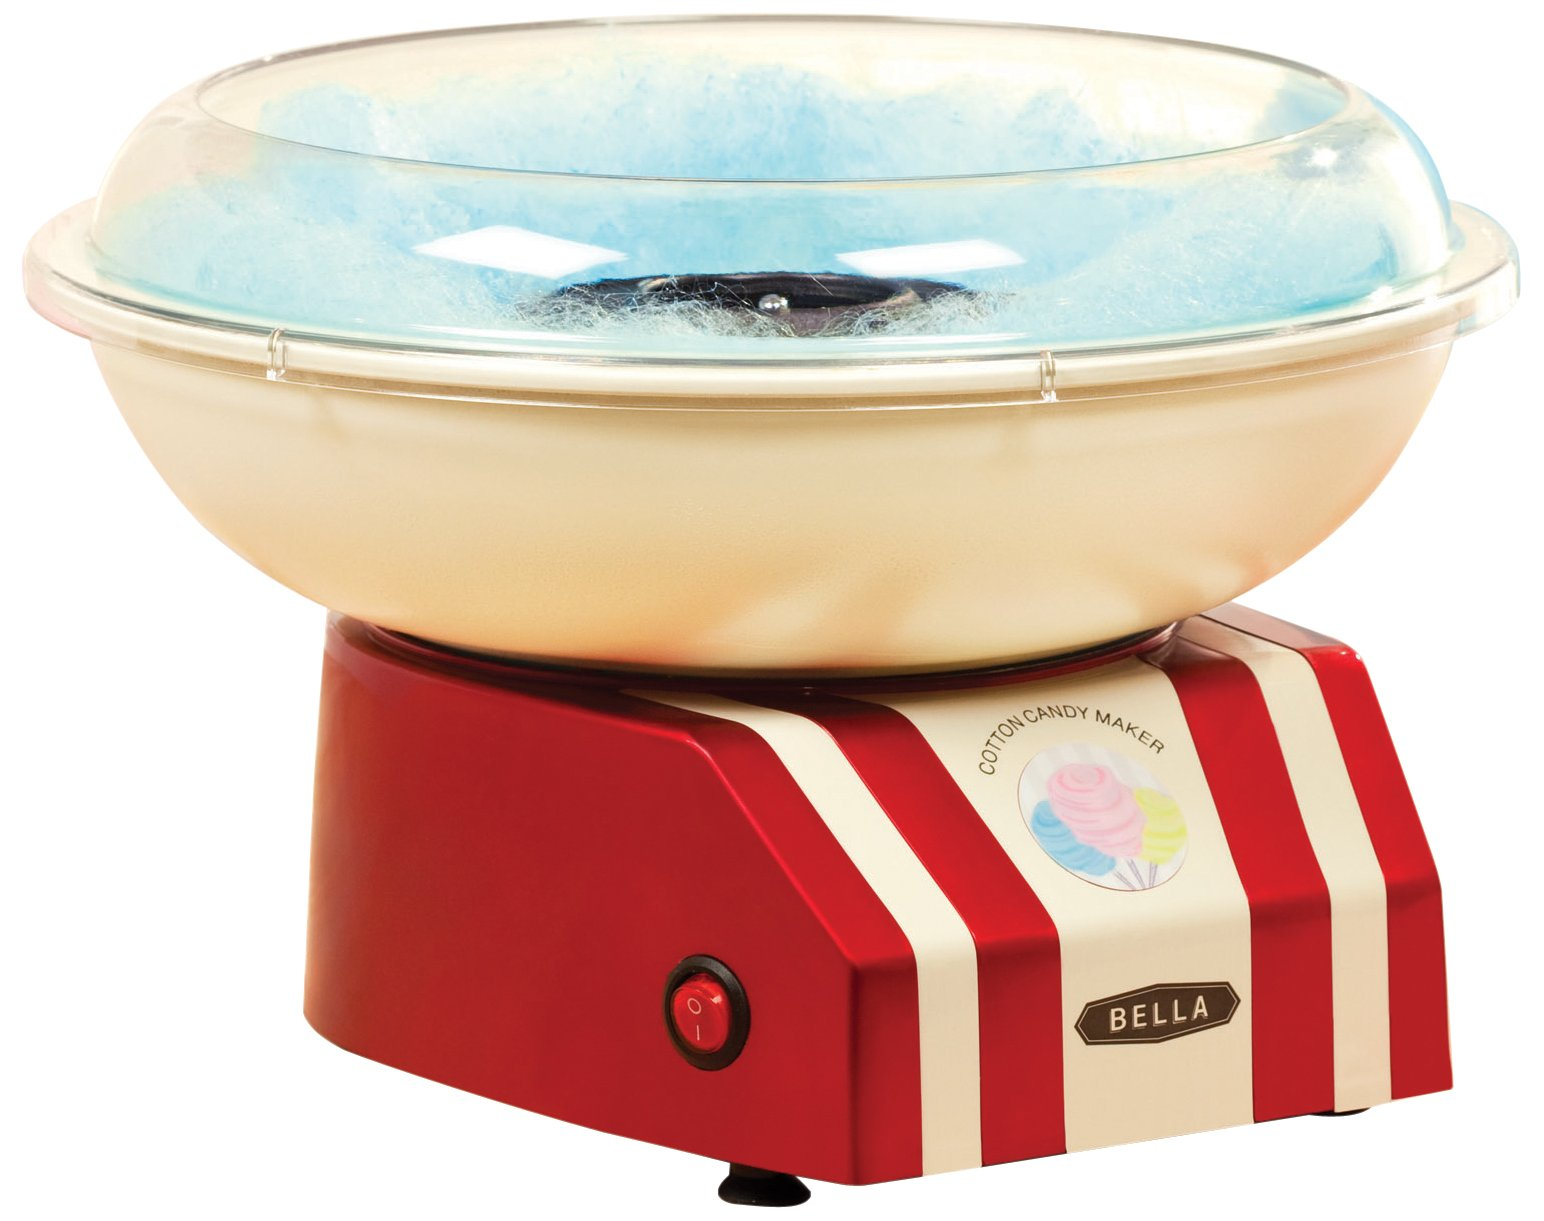 BELLA 13572 Cotton Candy Maker, Red and White by BELLA